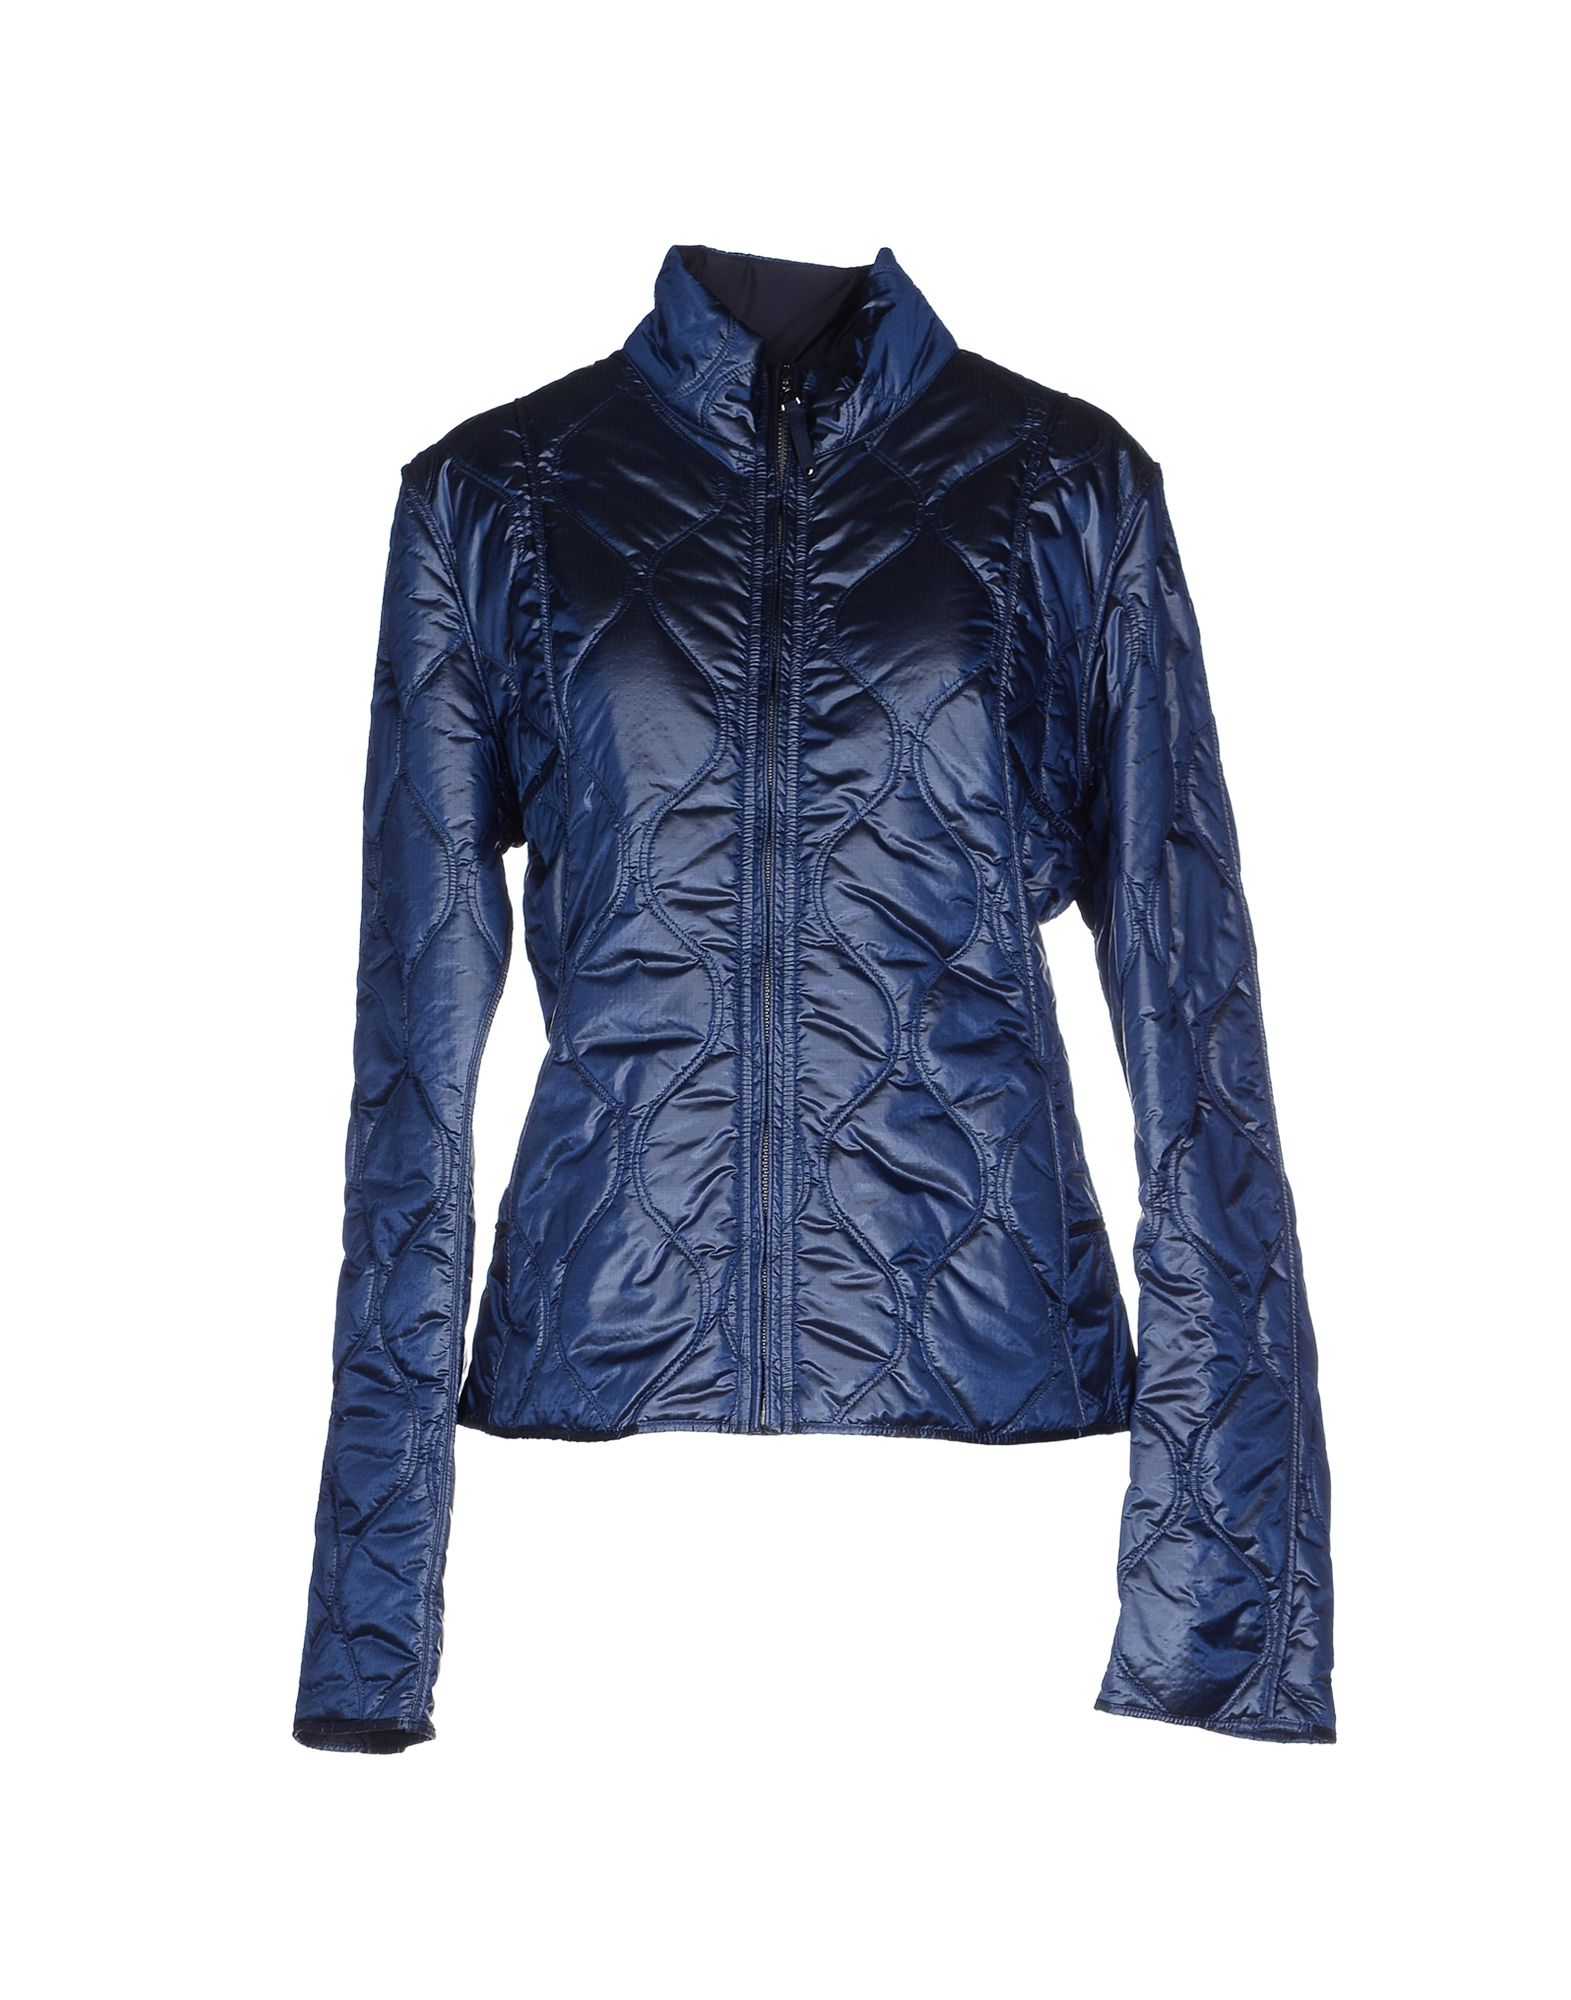 JET SET Jacket in Blue